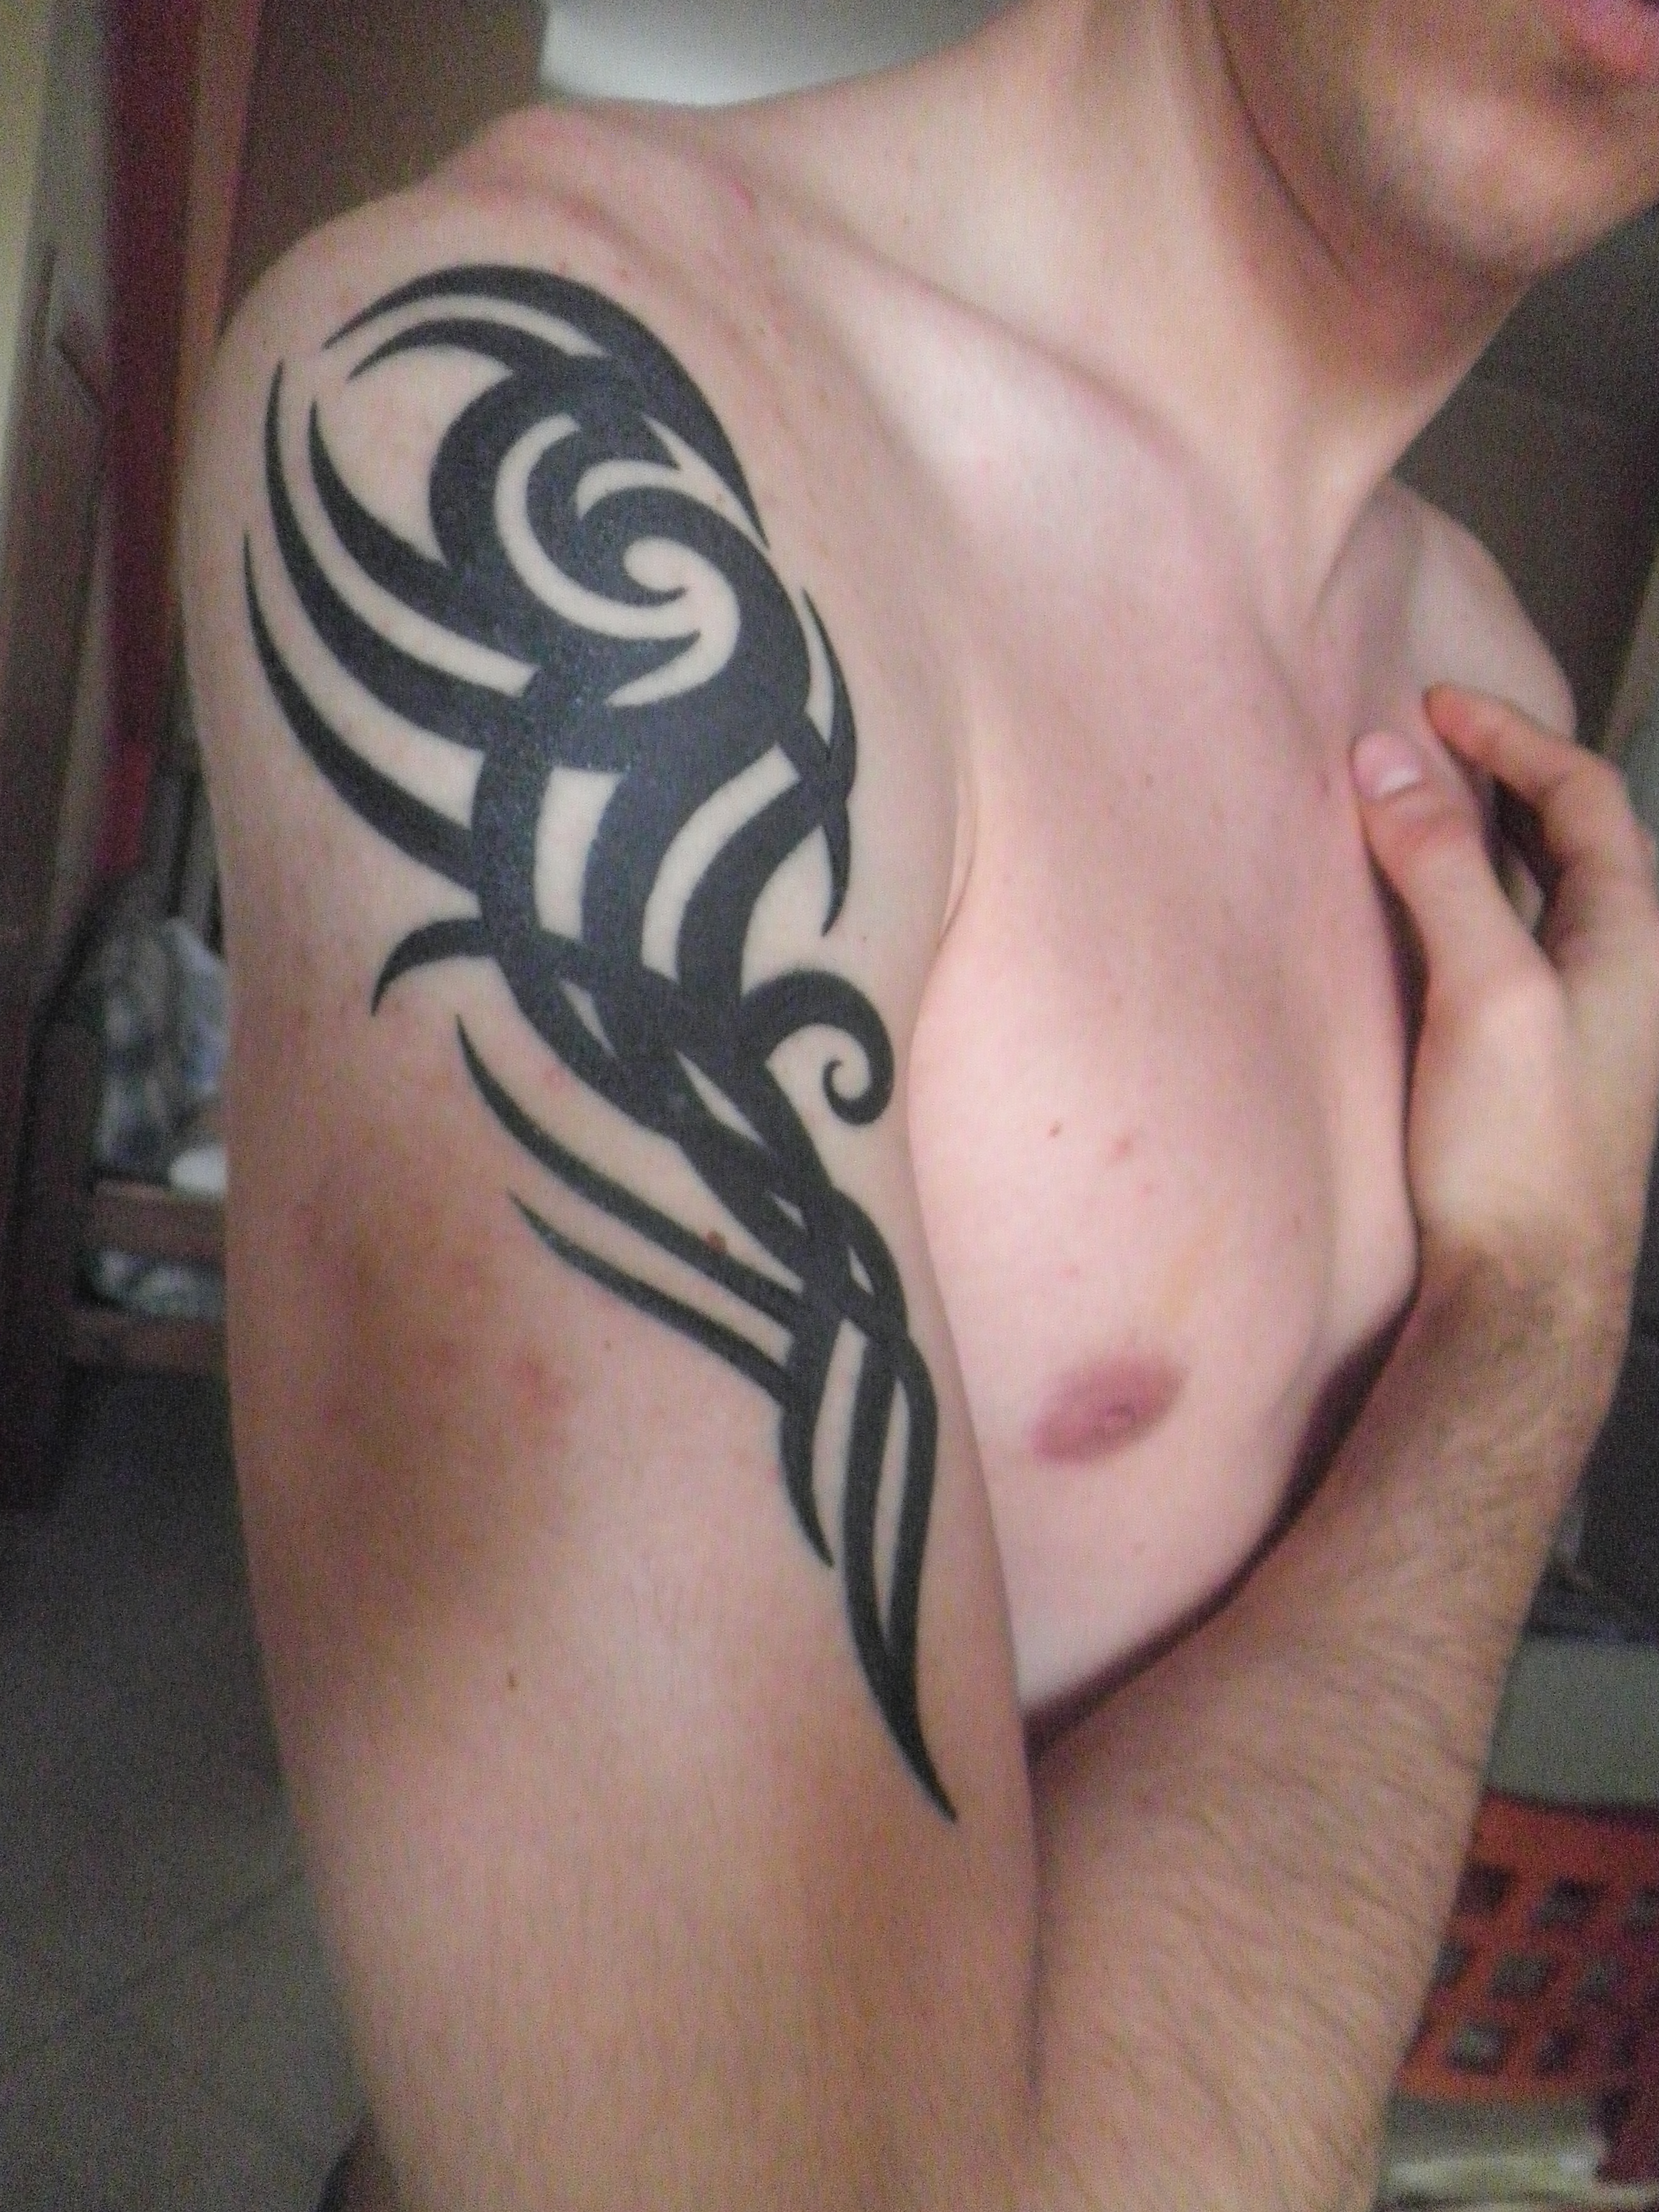 From ashes tattoo phoenix 3 by aster1989 on deviantart for Ashes in tattoo ink